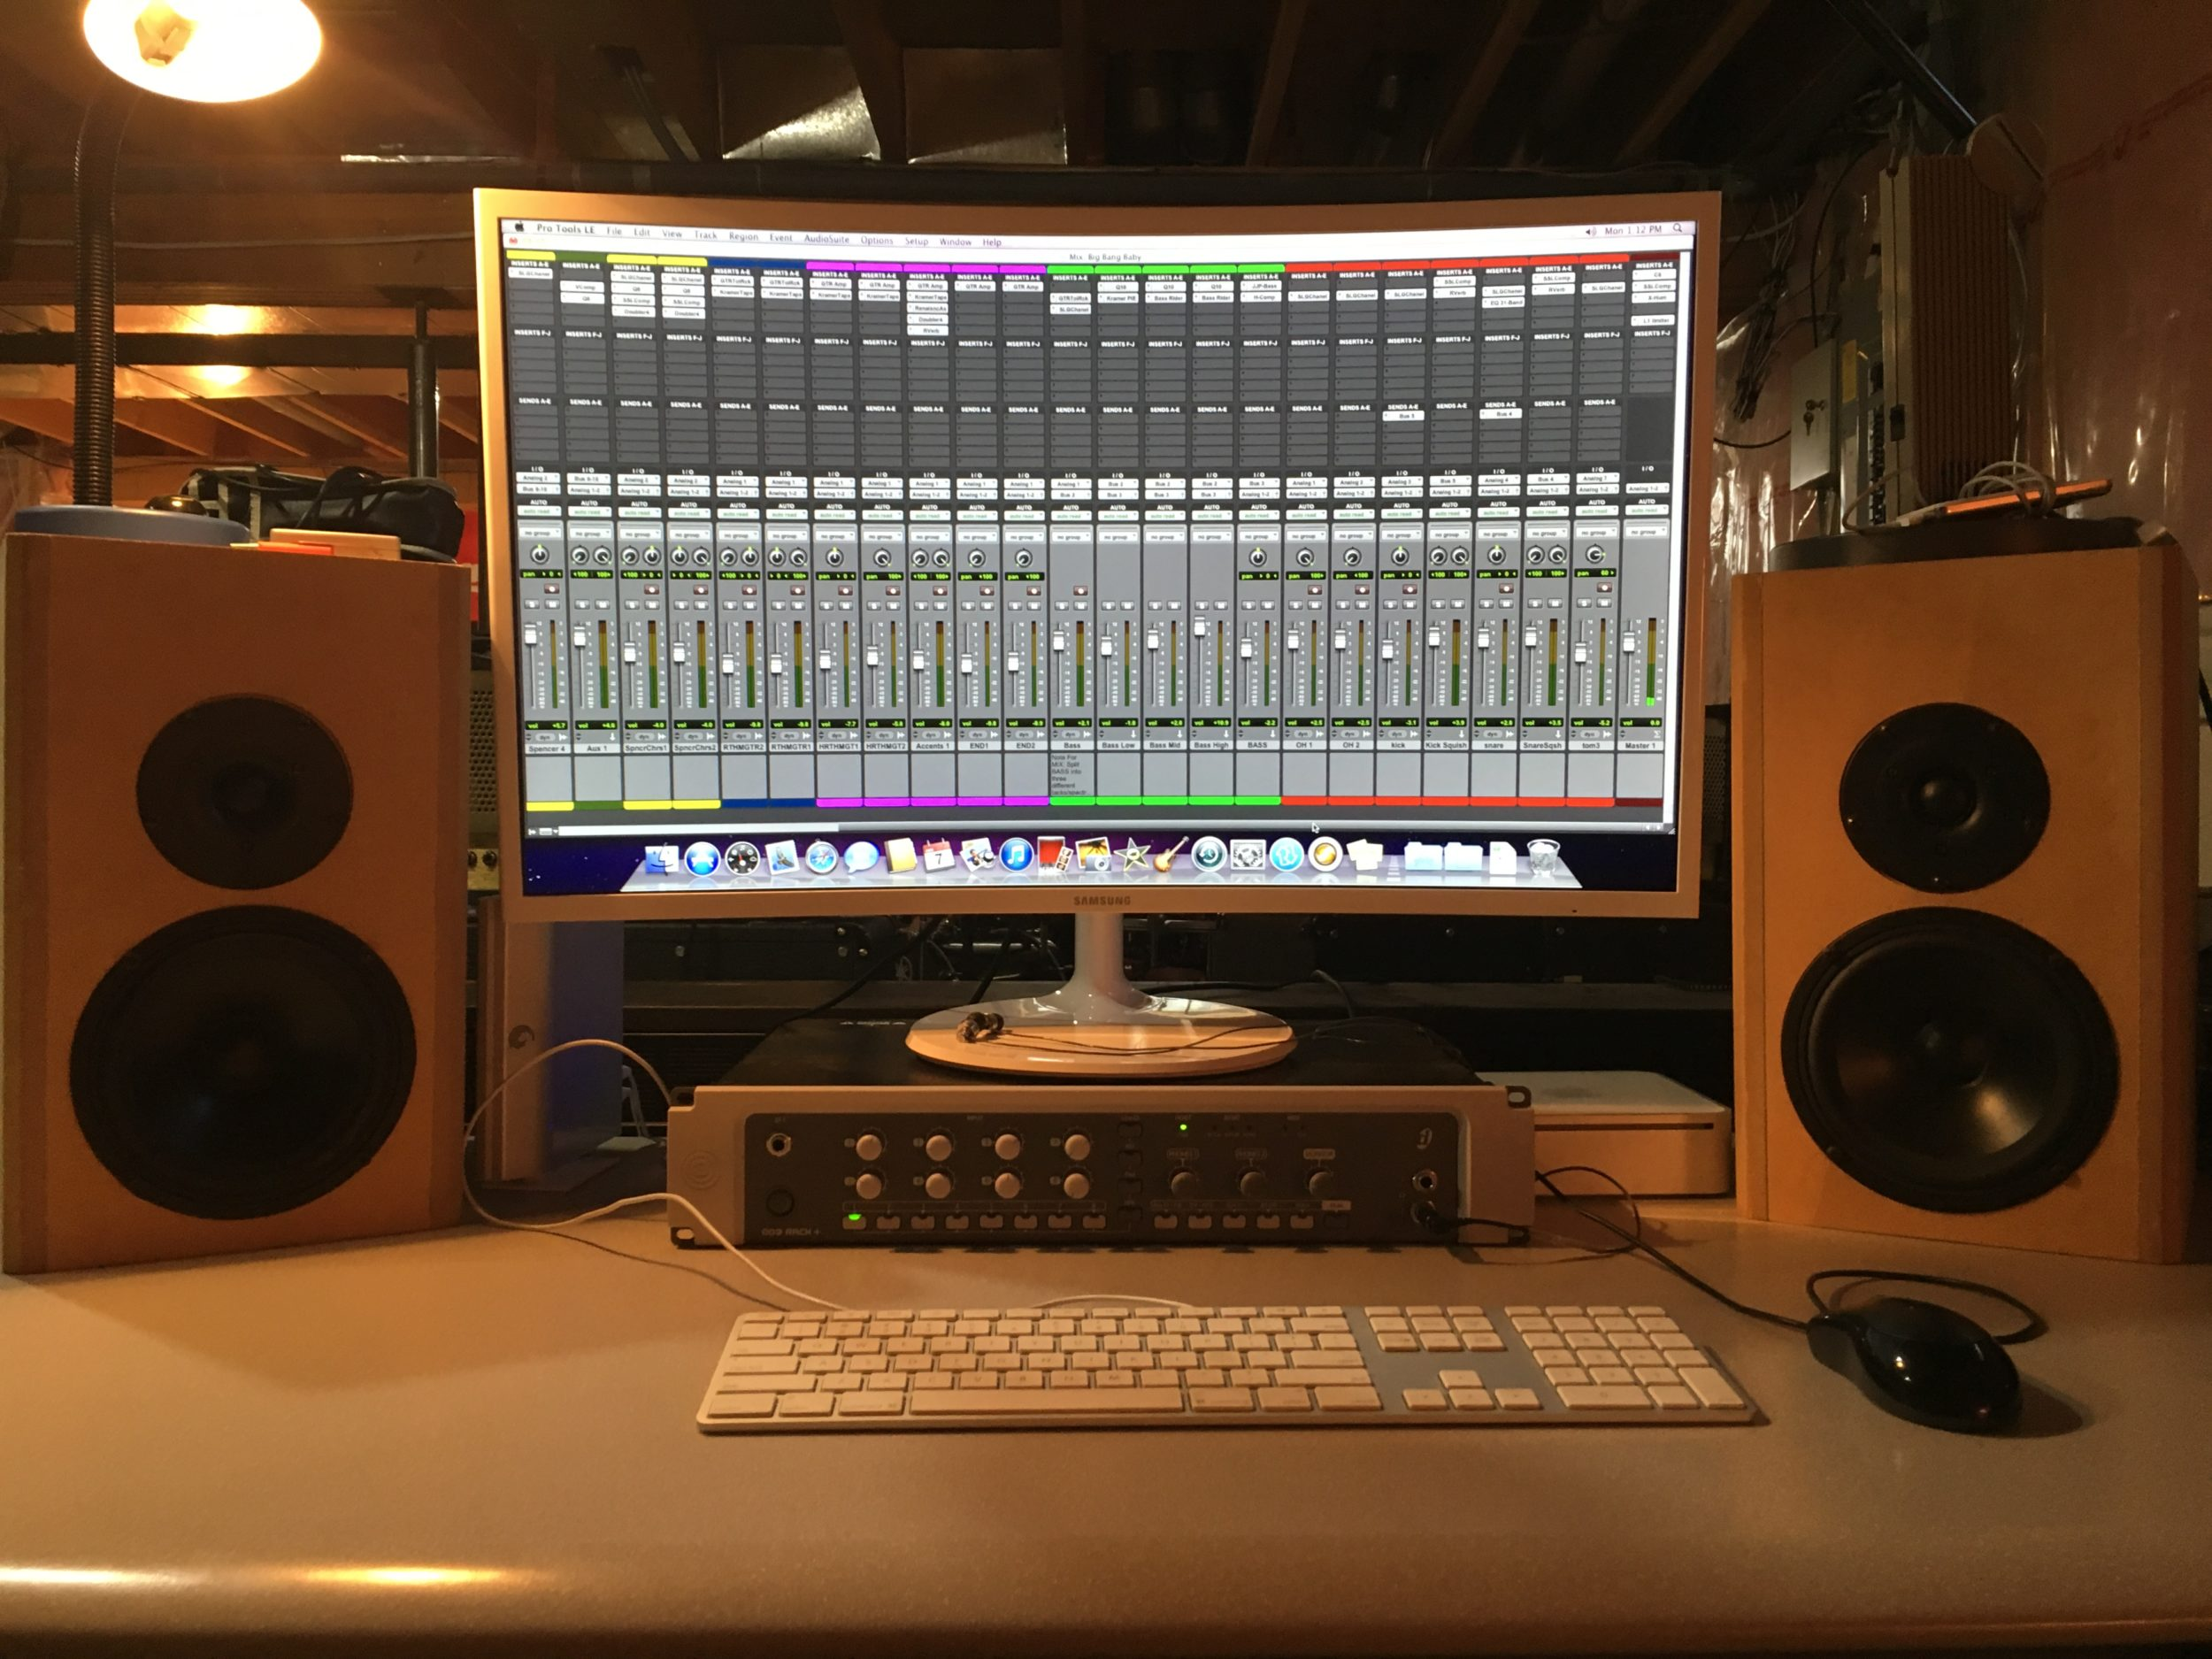 pro tools mix window on computer in Spencer's Calgary recording studio